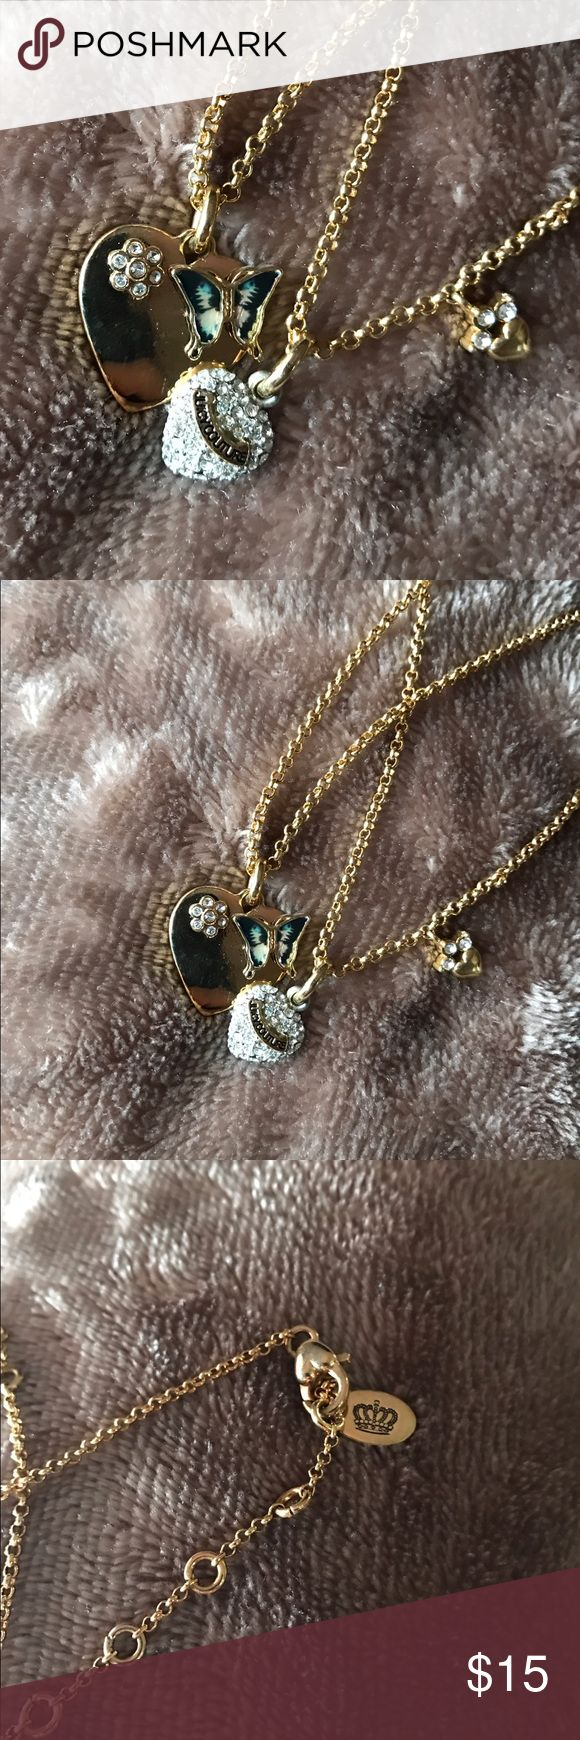 Juicy Couture Necklace Bundle Two gold authentic juicy couture necklaces. Excellent condition, never worn. take advantage and send offers !! Juicy Couture Jewelry Necklaces